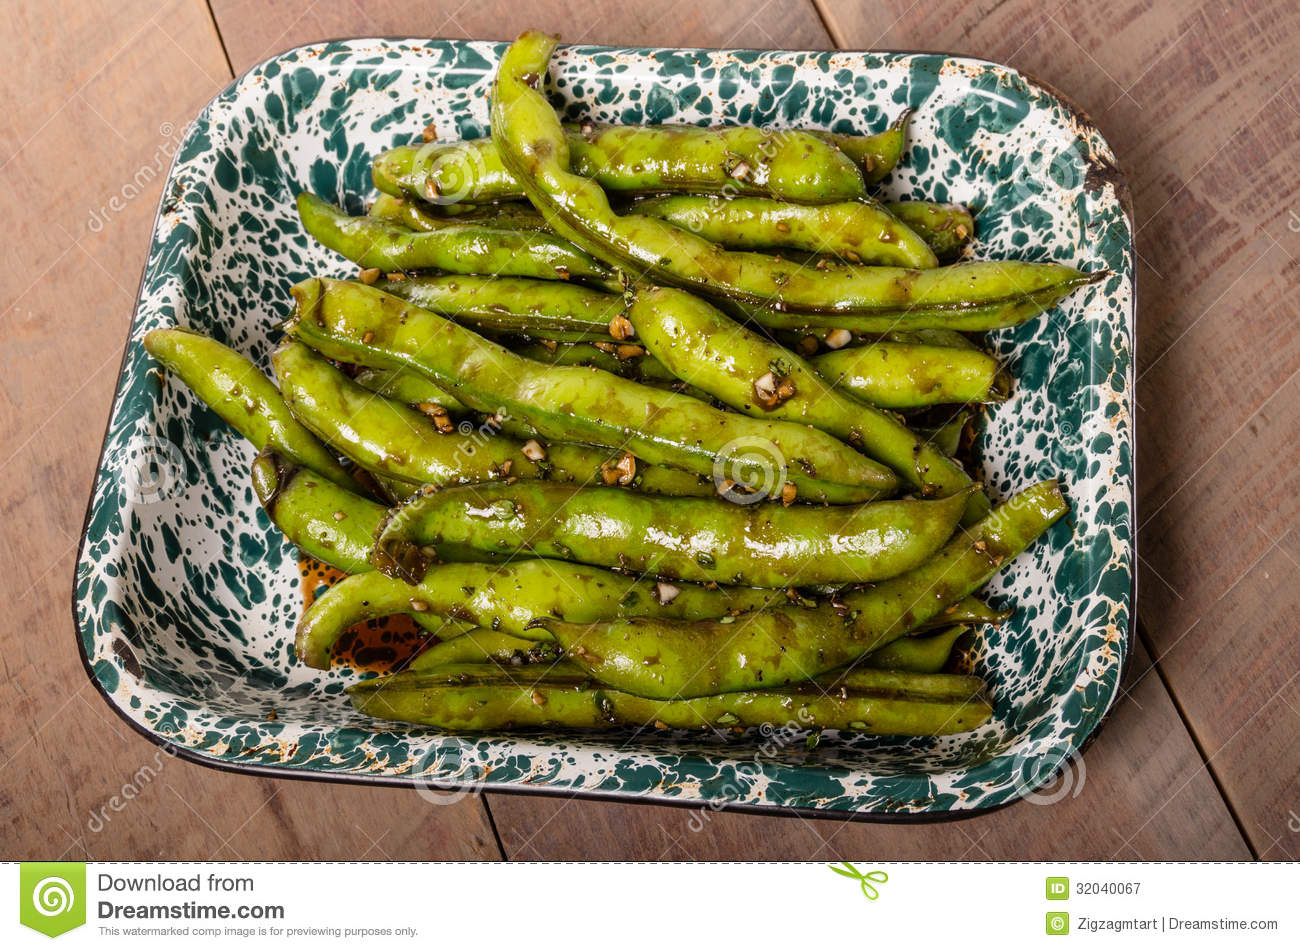 ... fava fava beans with marinated fava beans per person canned fava beans